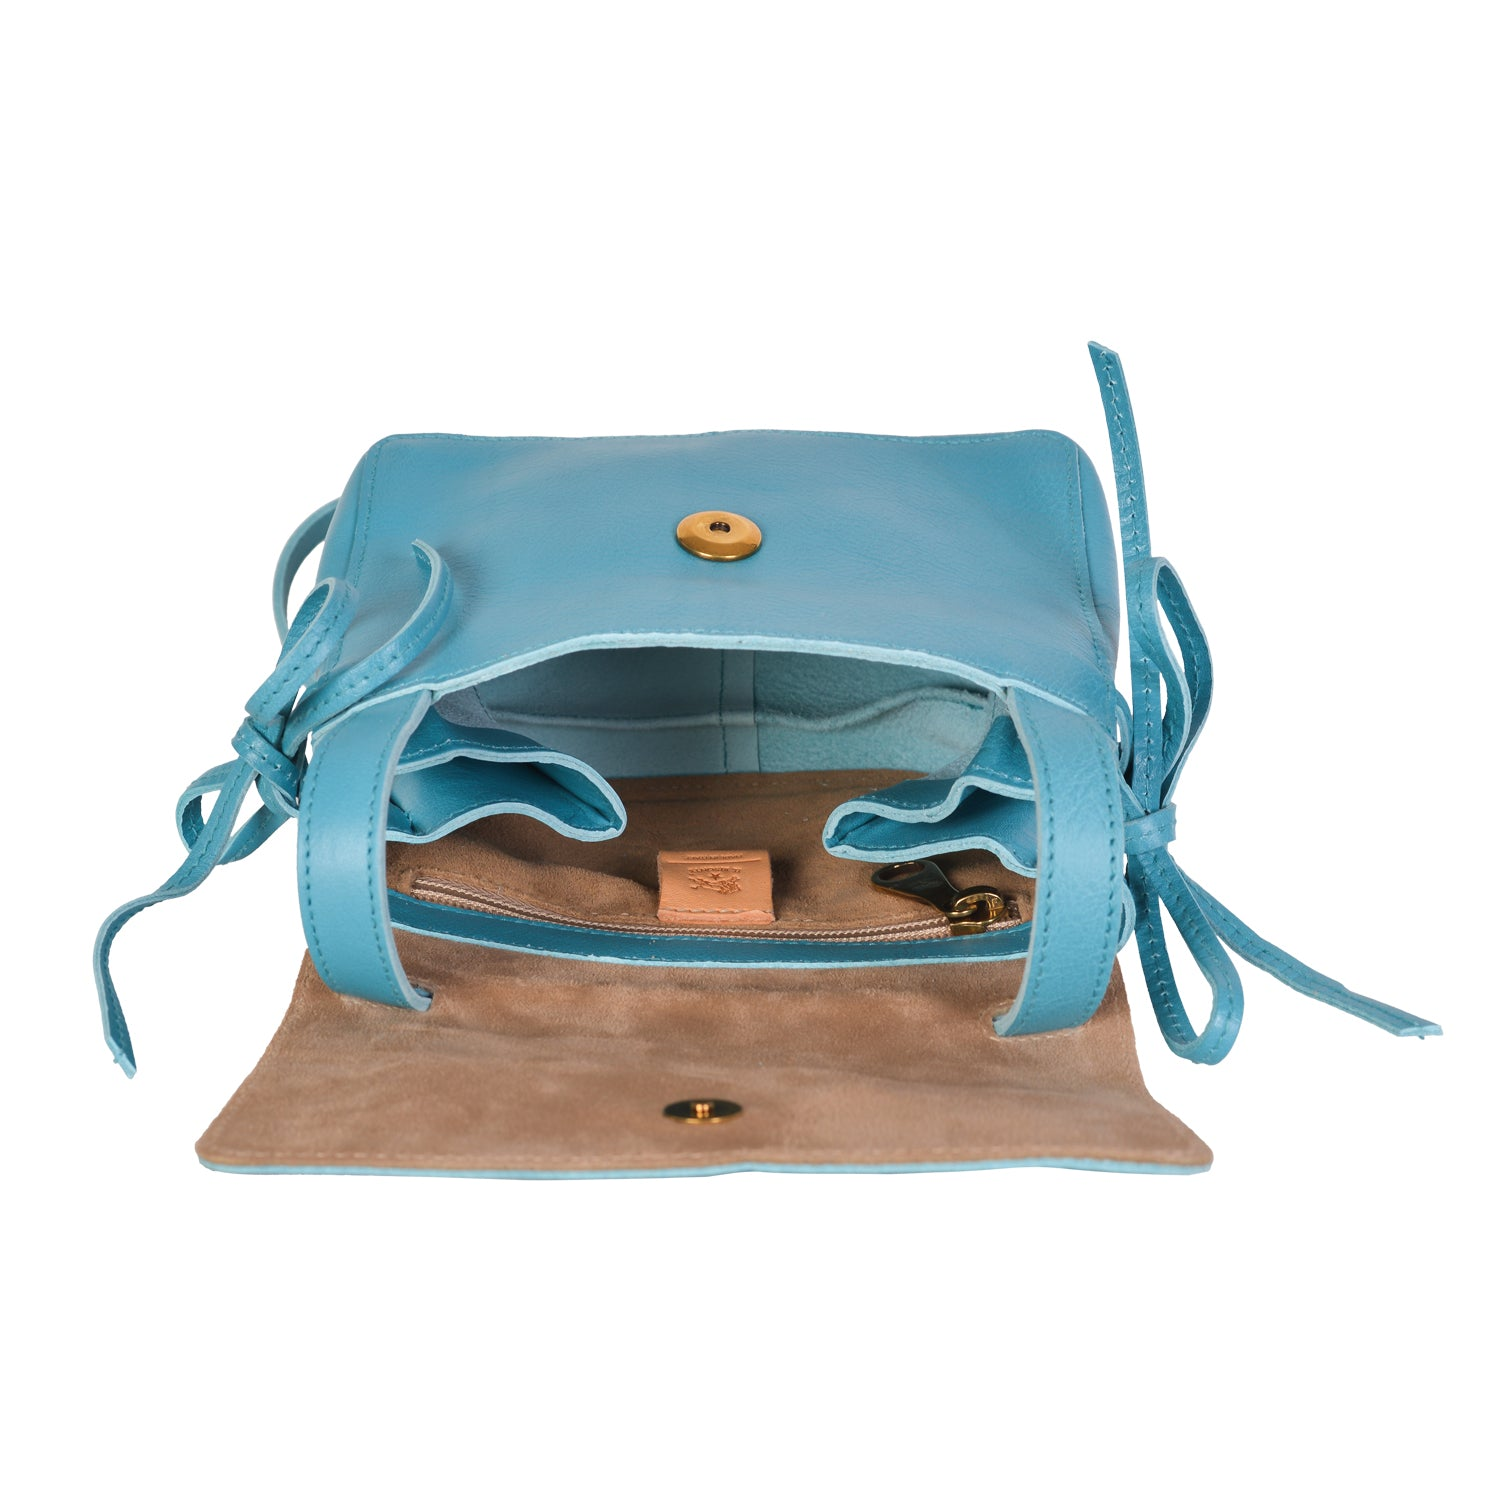 NEW IL BISONTE WOMAN'S SOFFIETTO COLLECTION CROSSBODY BAG IN TURQUOISE LEATHER